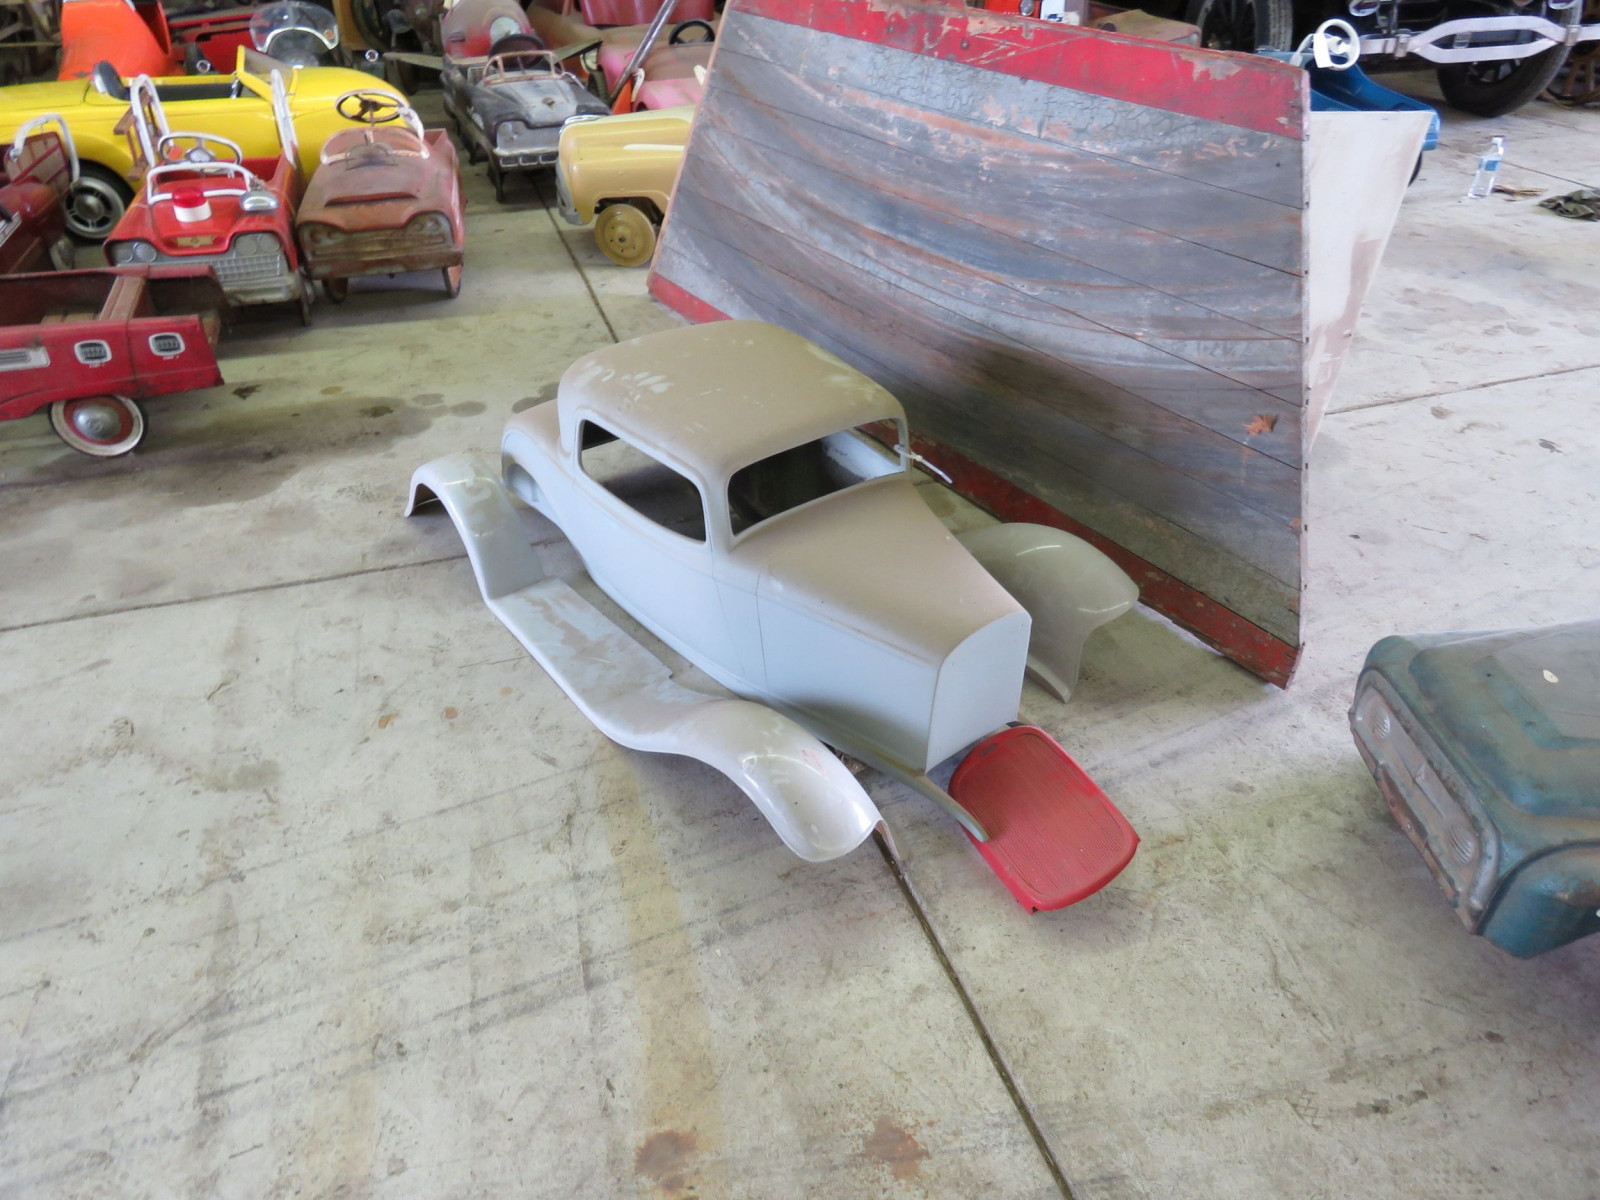 1932 Ford Coupe Fiberglass Body for Project Pedal Car - Image 1